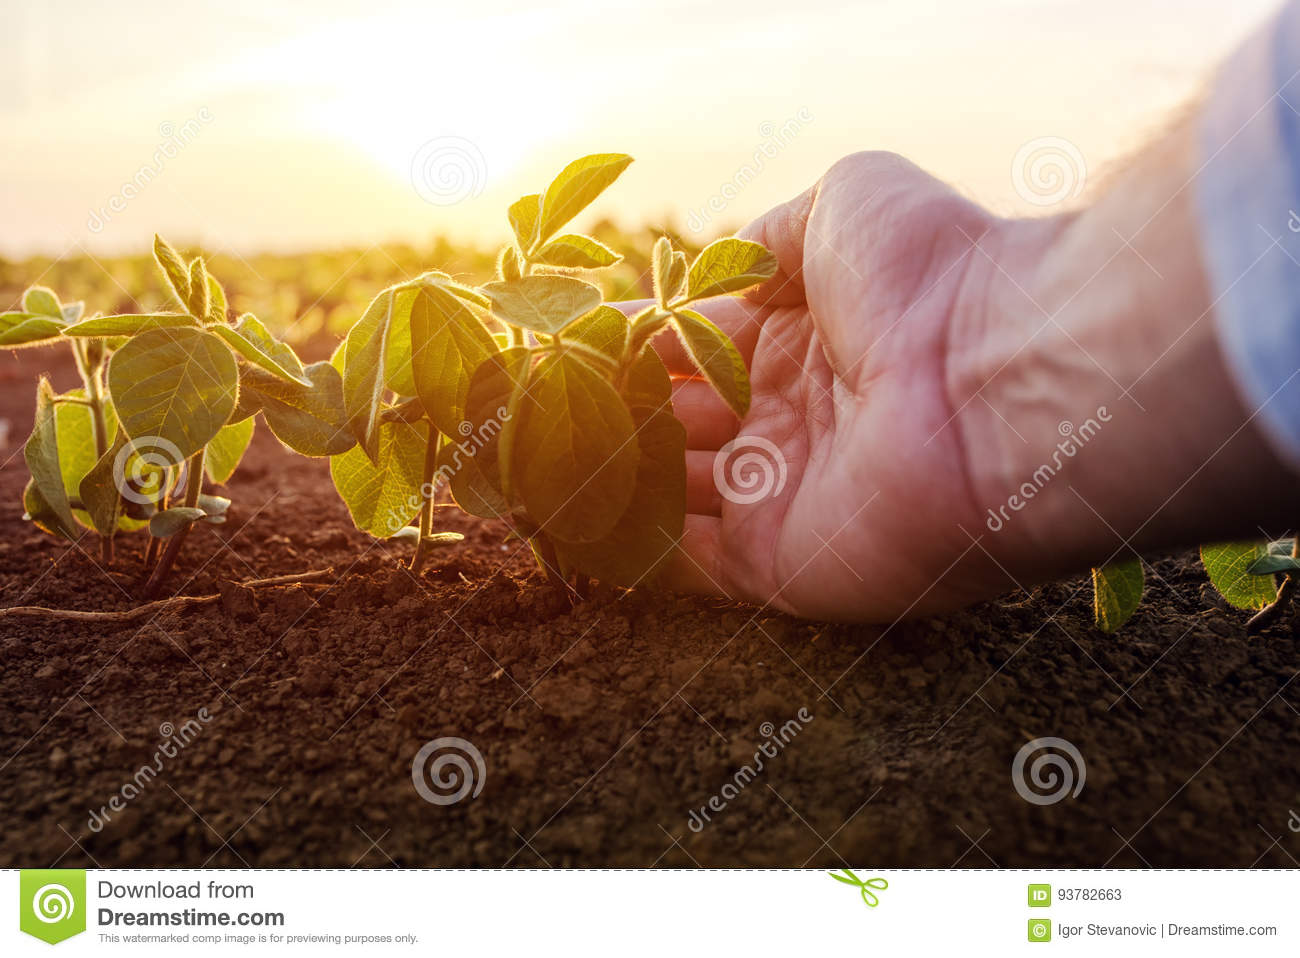 Agronomist checking small soybean plants in cultivated agricultural field